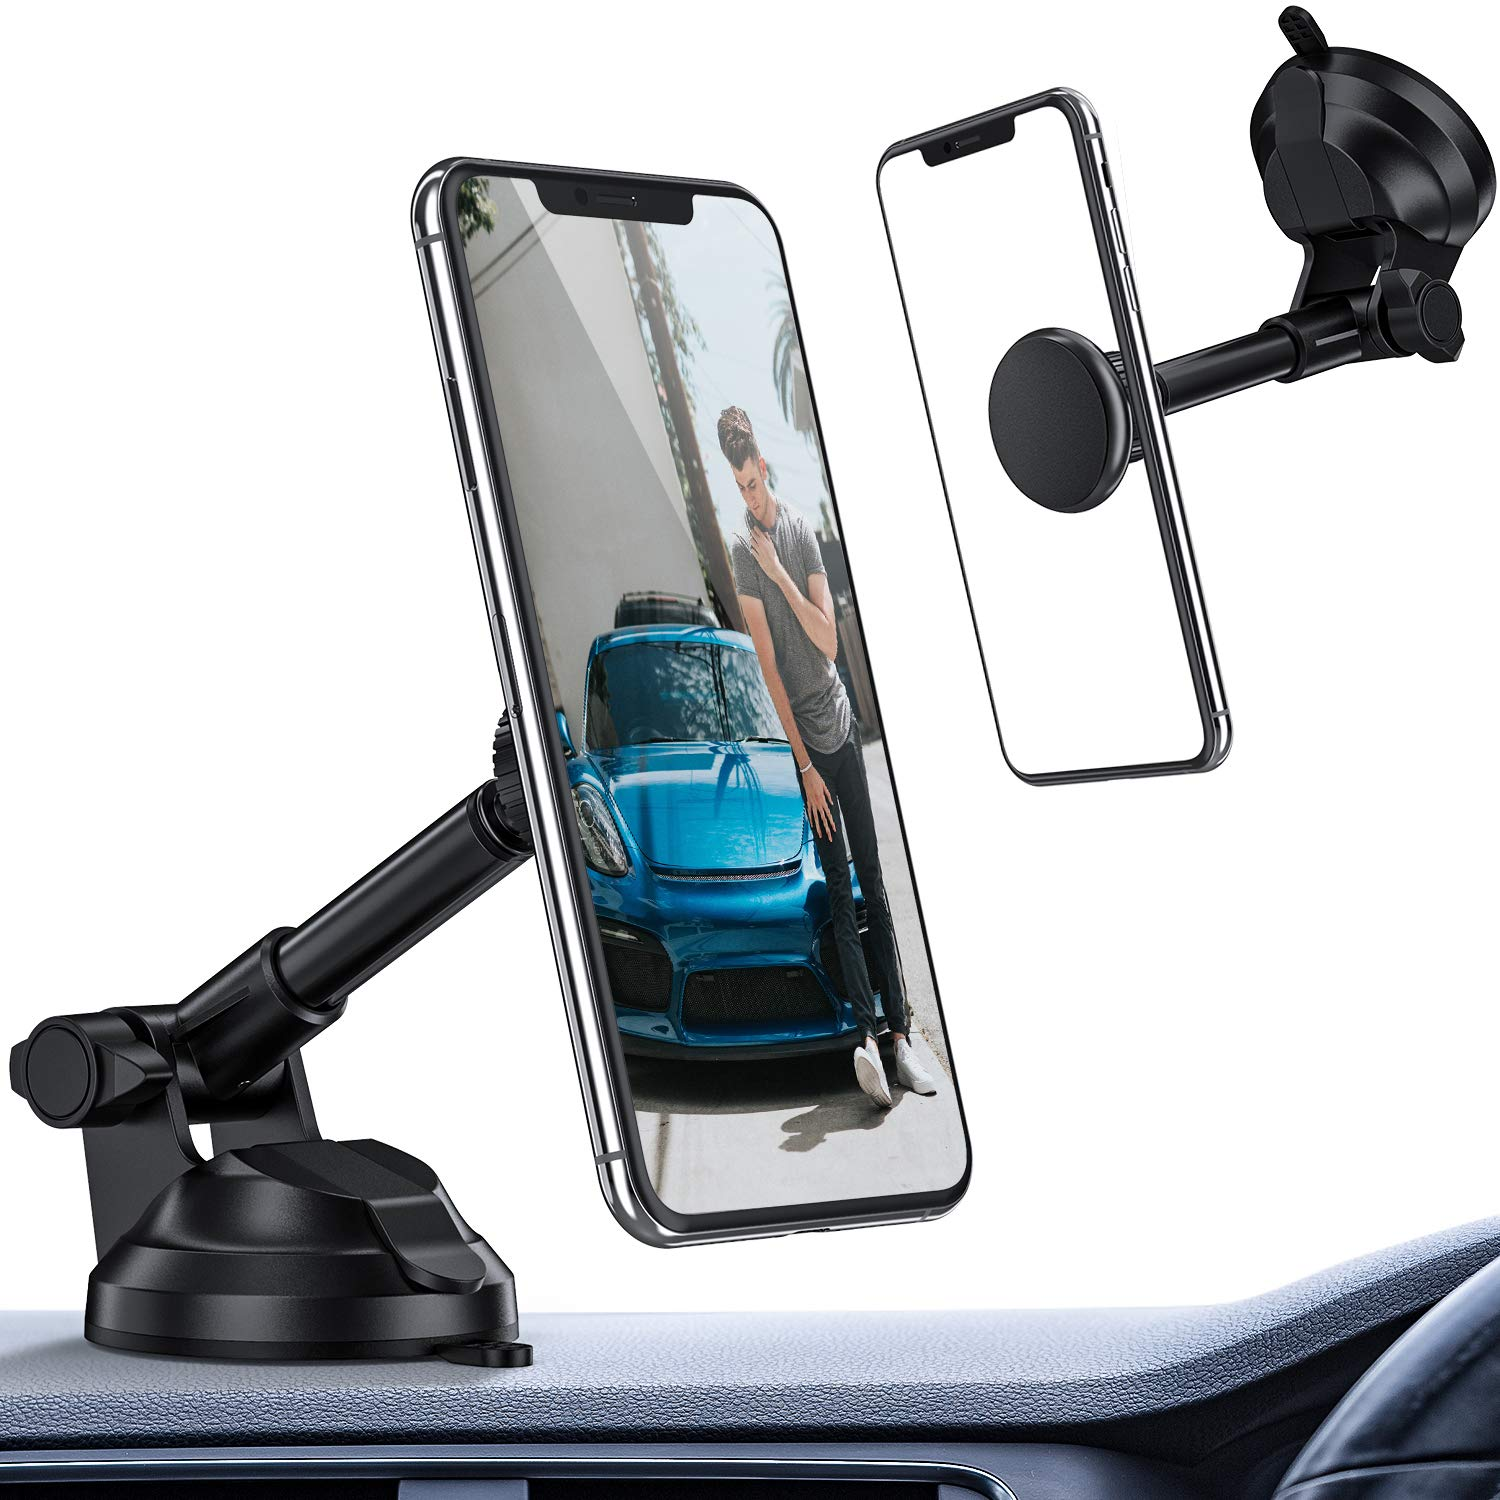 ORIbox Car Phone Mount, Magnetic Phone Car Mount, Strength Suction Cup Car Phone Mount Holder with Adjustable Telescopic Arm, Compatible with iPhone Samsung Galaxy